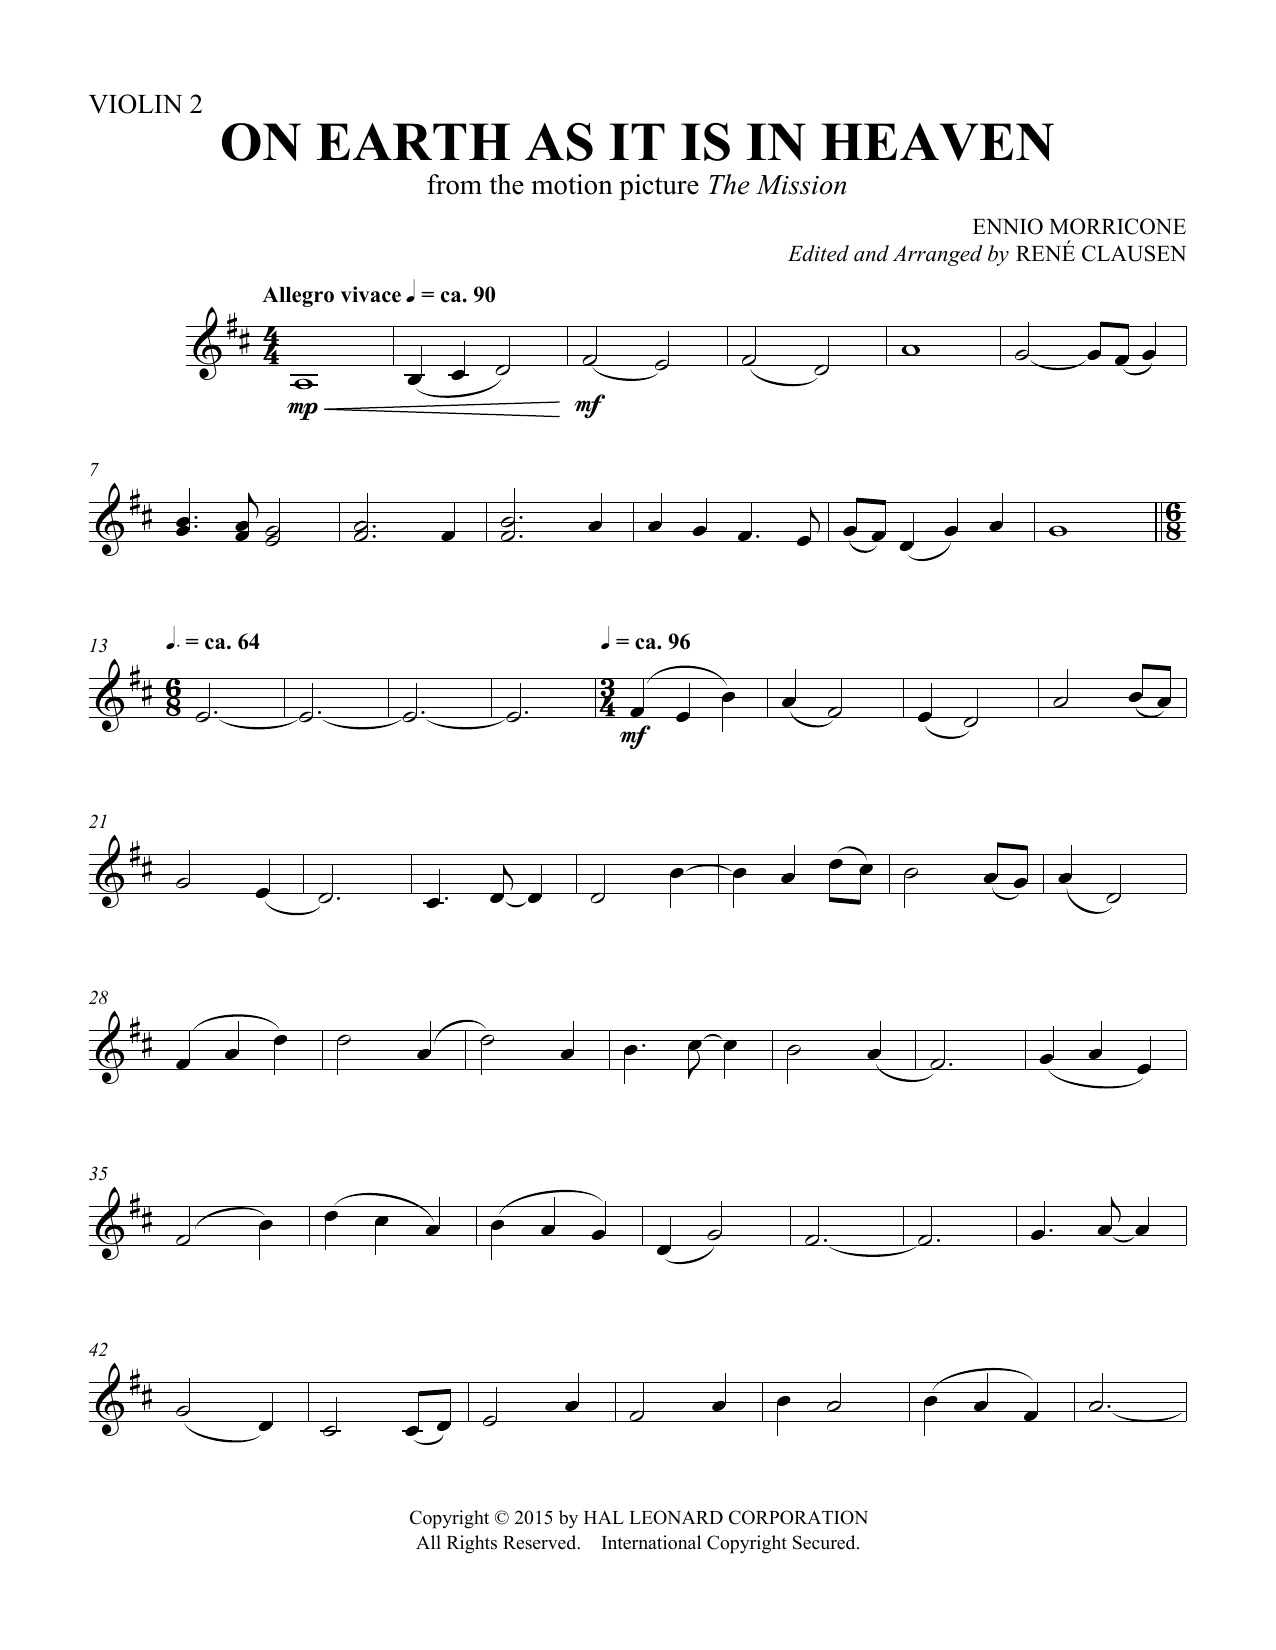 On Earth As It Is In Heaven - Violin 2 Sheet Music